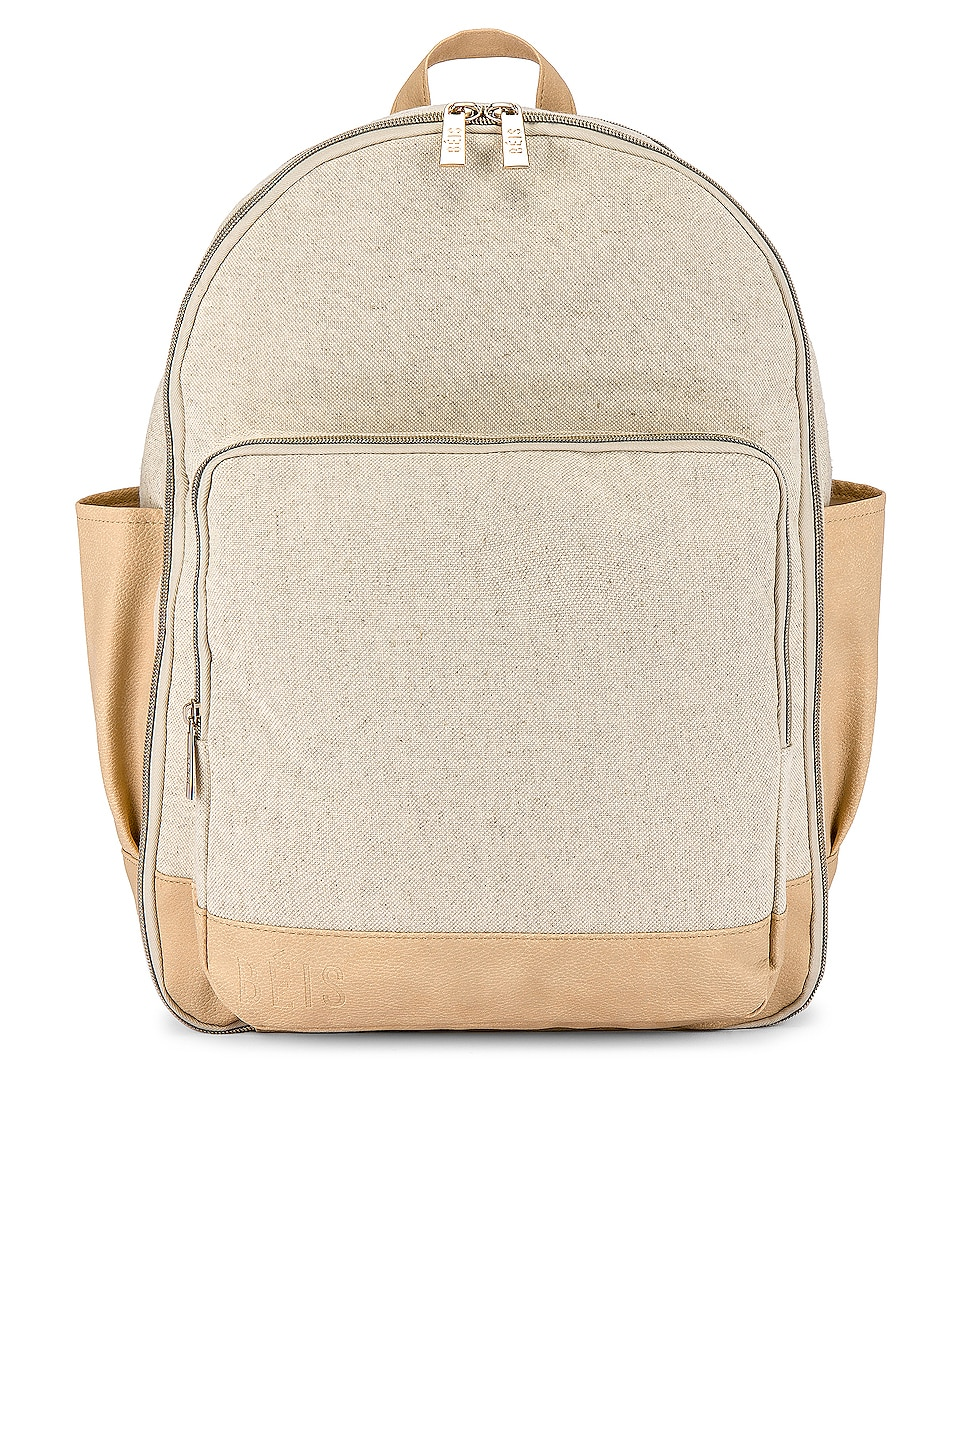 BEIS Backpack in Beige